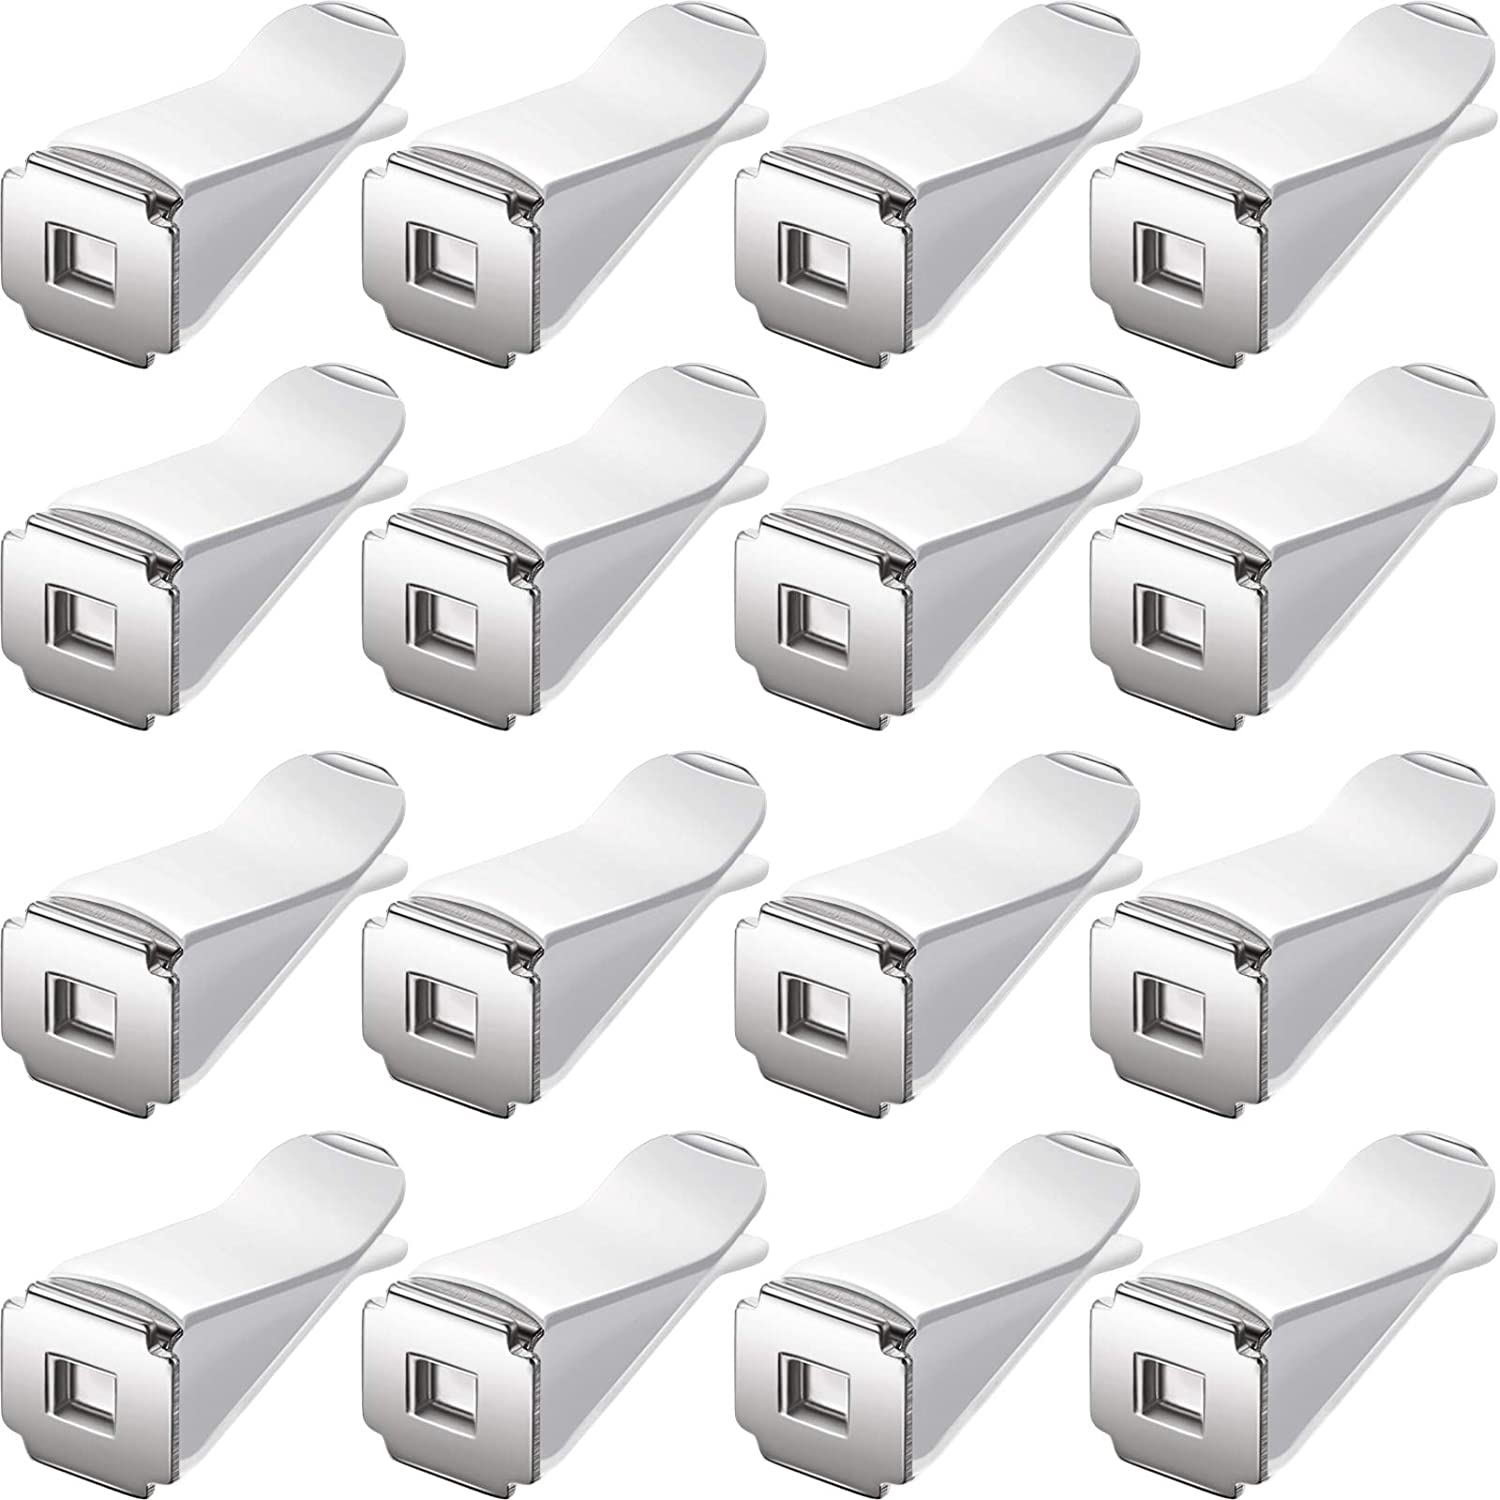 BBTO 40 Pieces Square Head Car Air Vent Clips for Auto Air Conditioner Outlet Clips Smell Remover Decor (White)